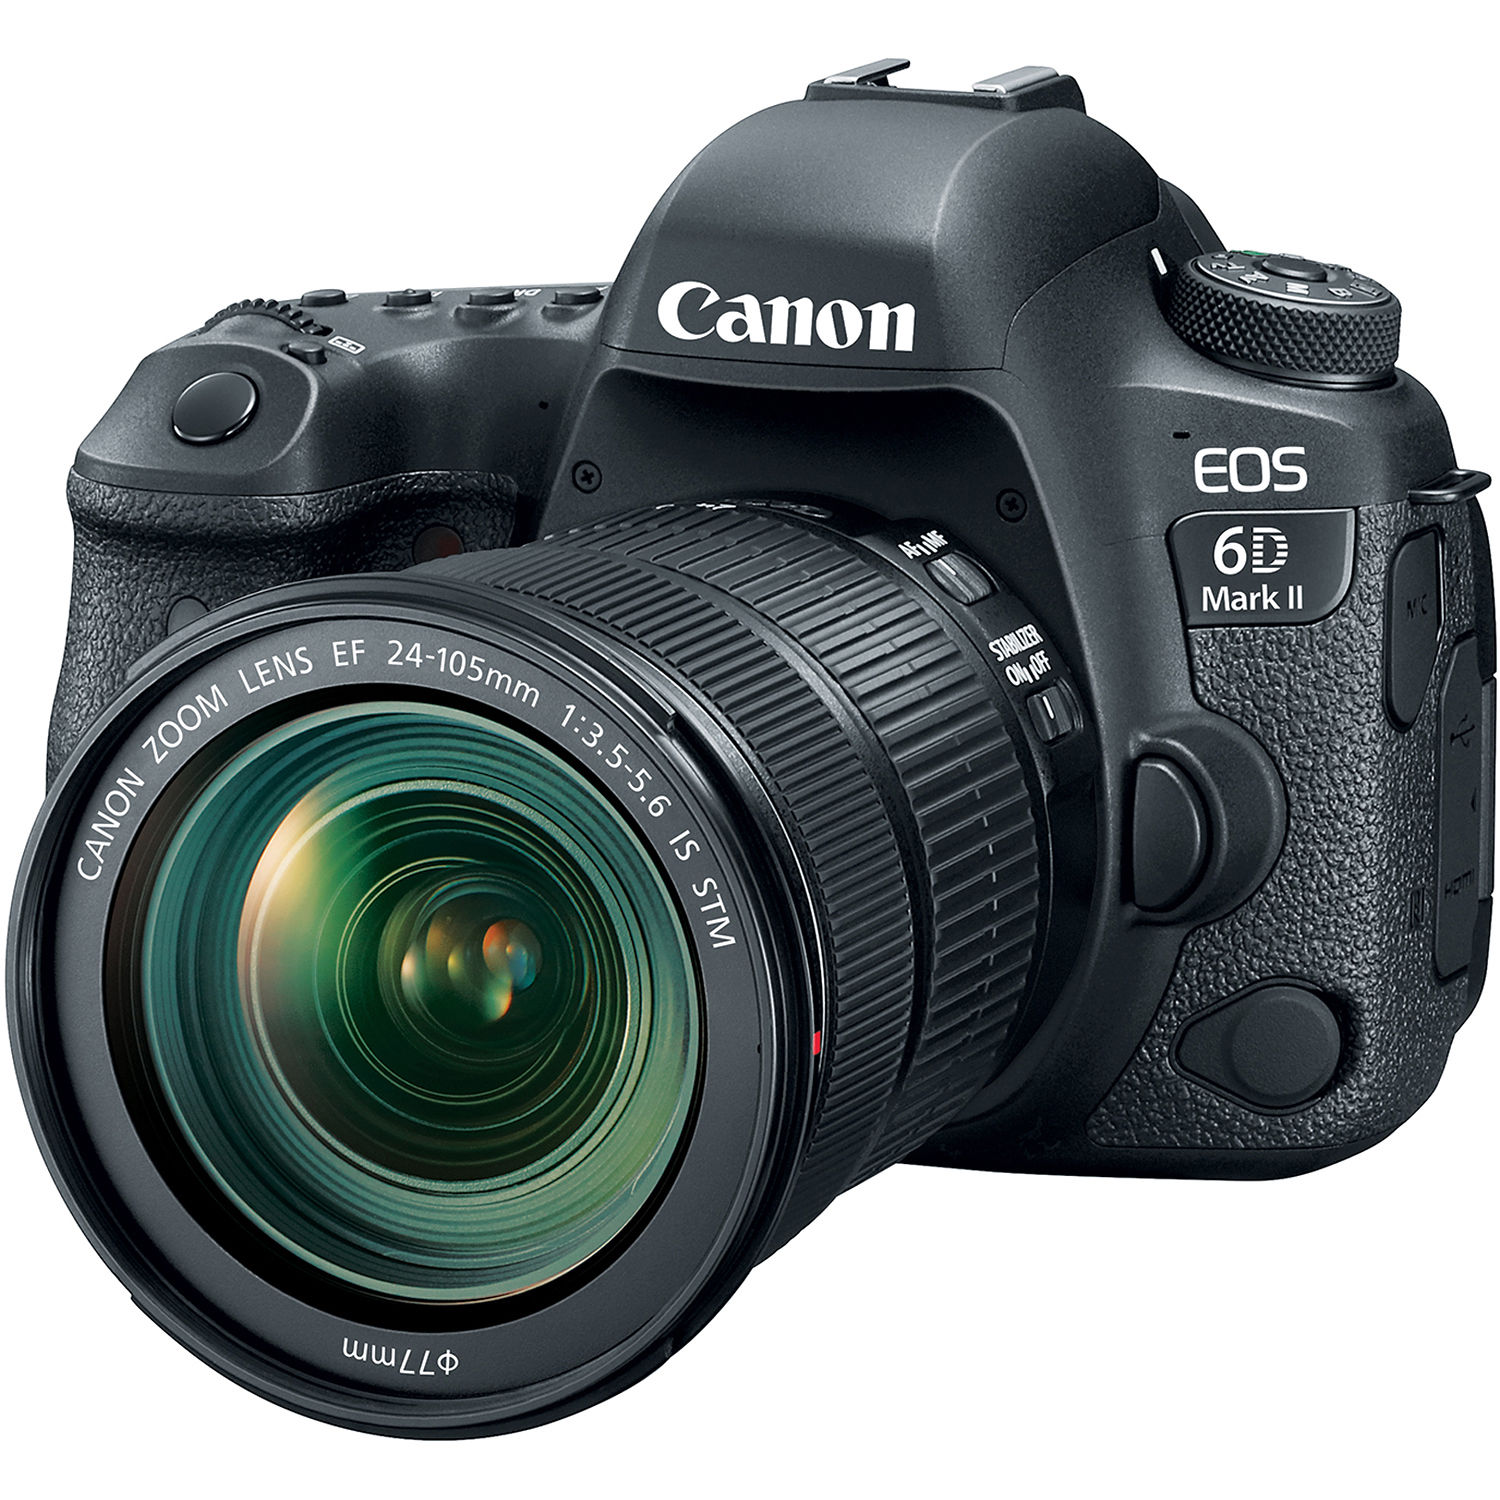 Canon EOS 6D Mark II DSLR Camera with 24-105mm f/3 5-5 6 Lens